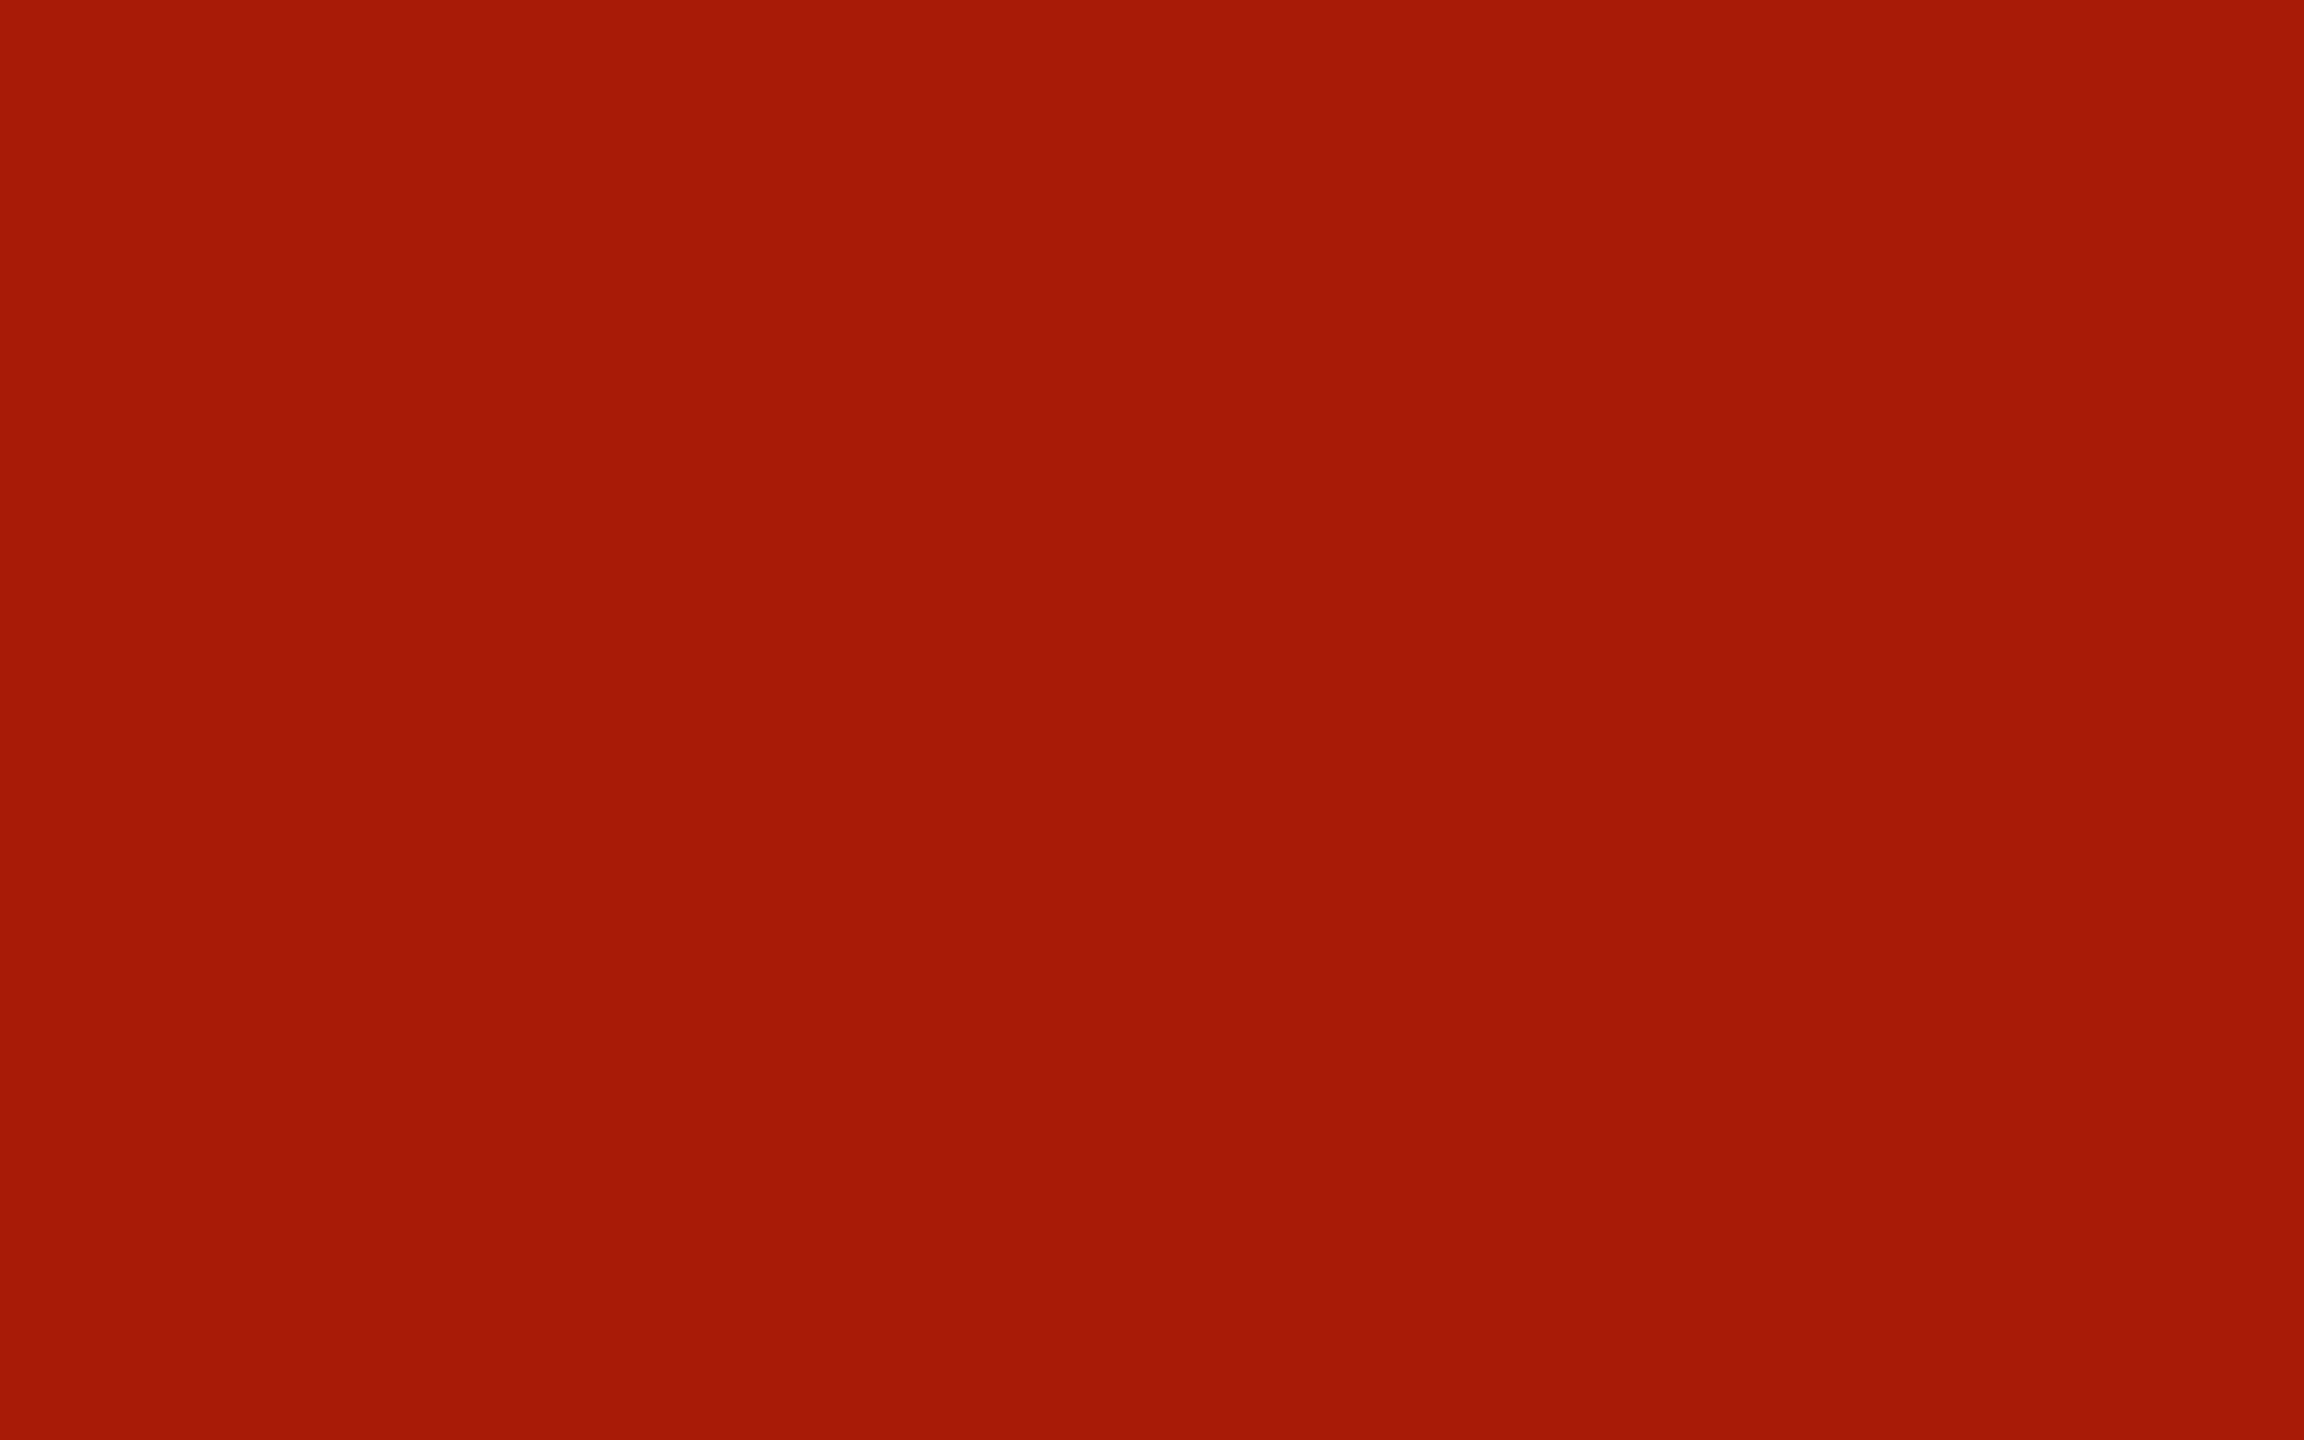 2304x1440 Rufous Solid Color Background